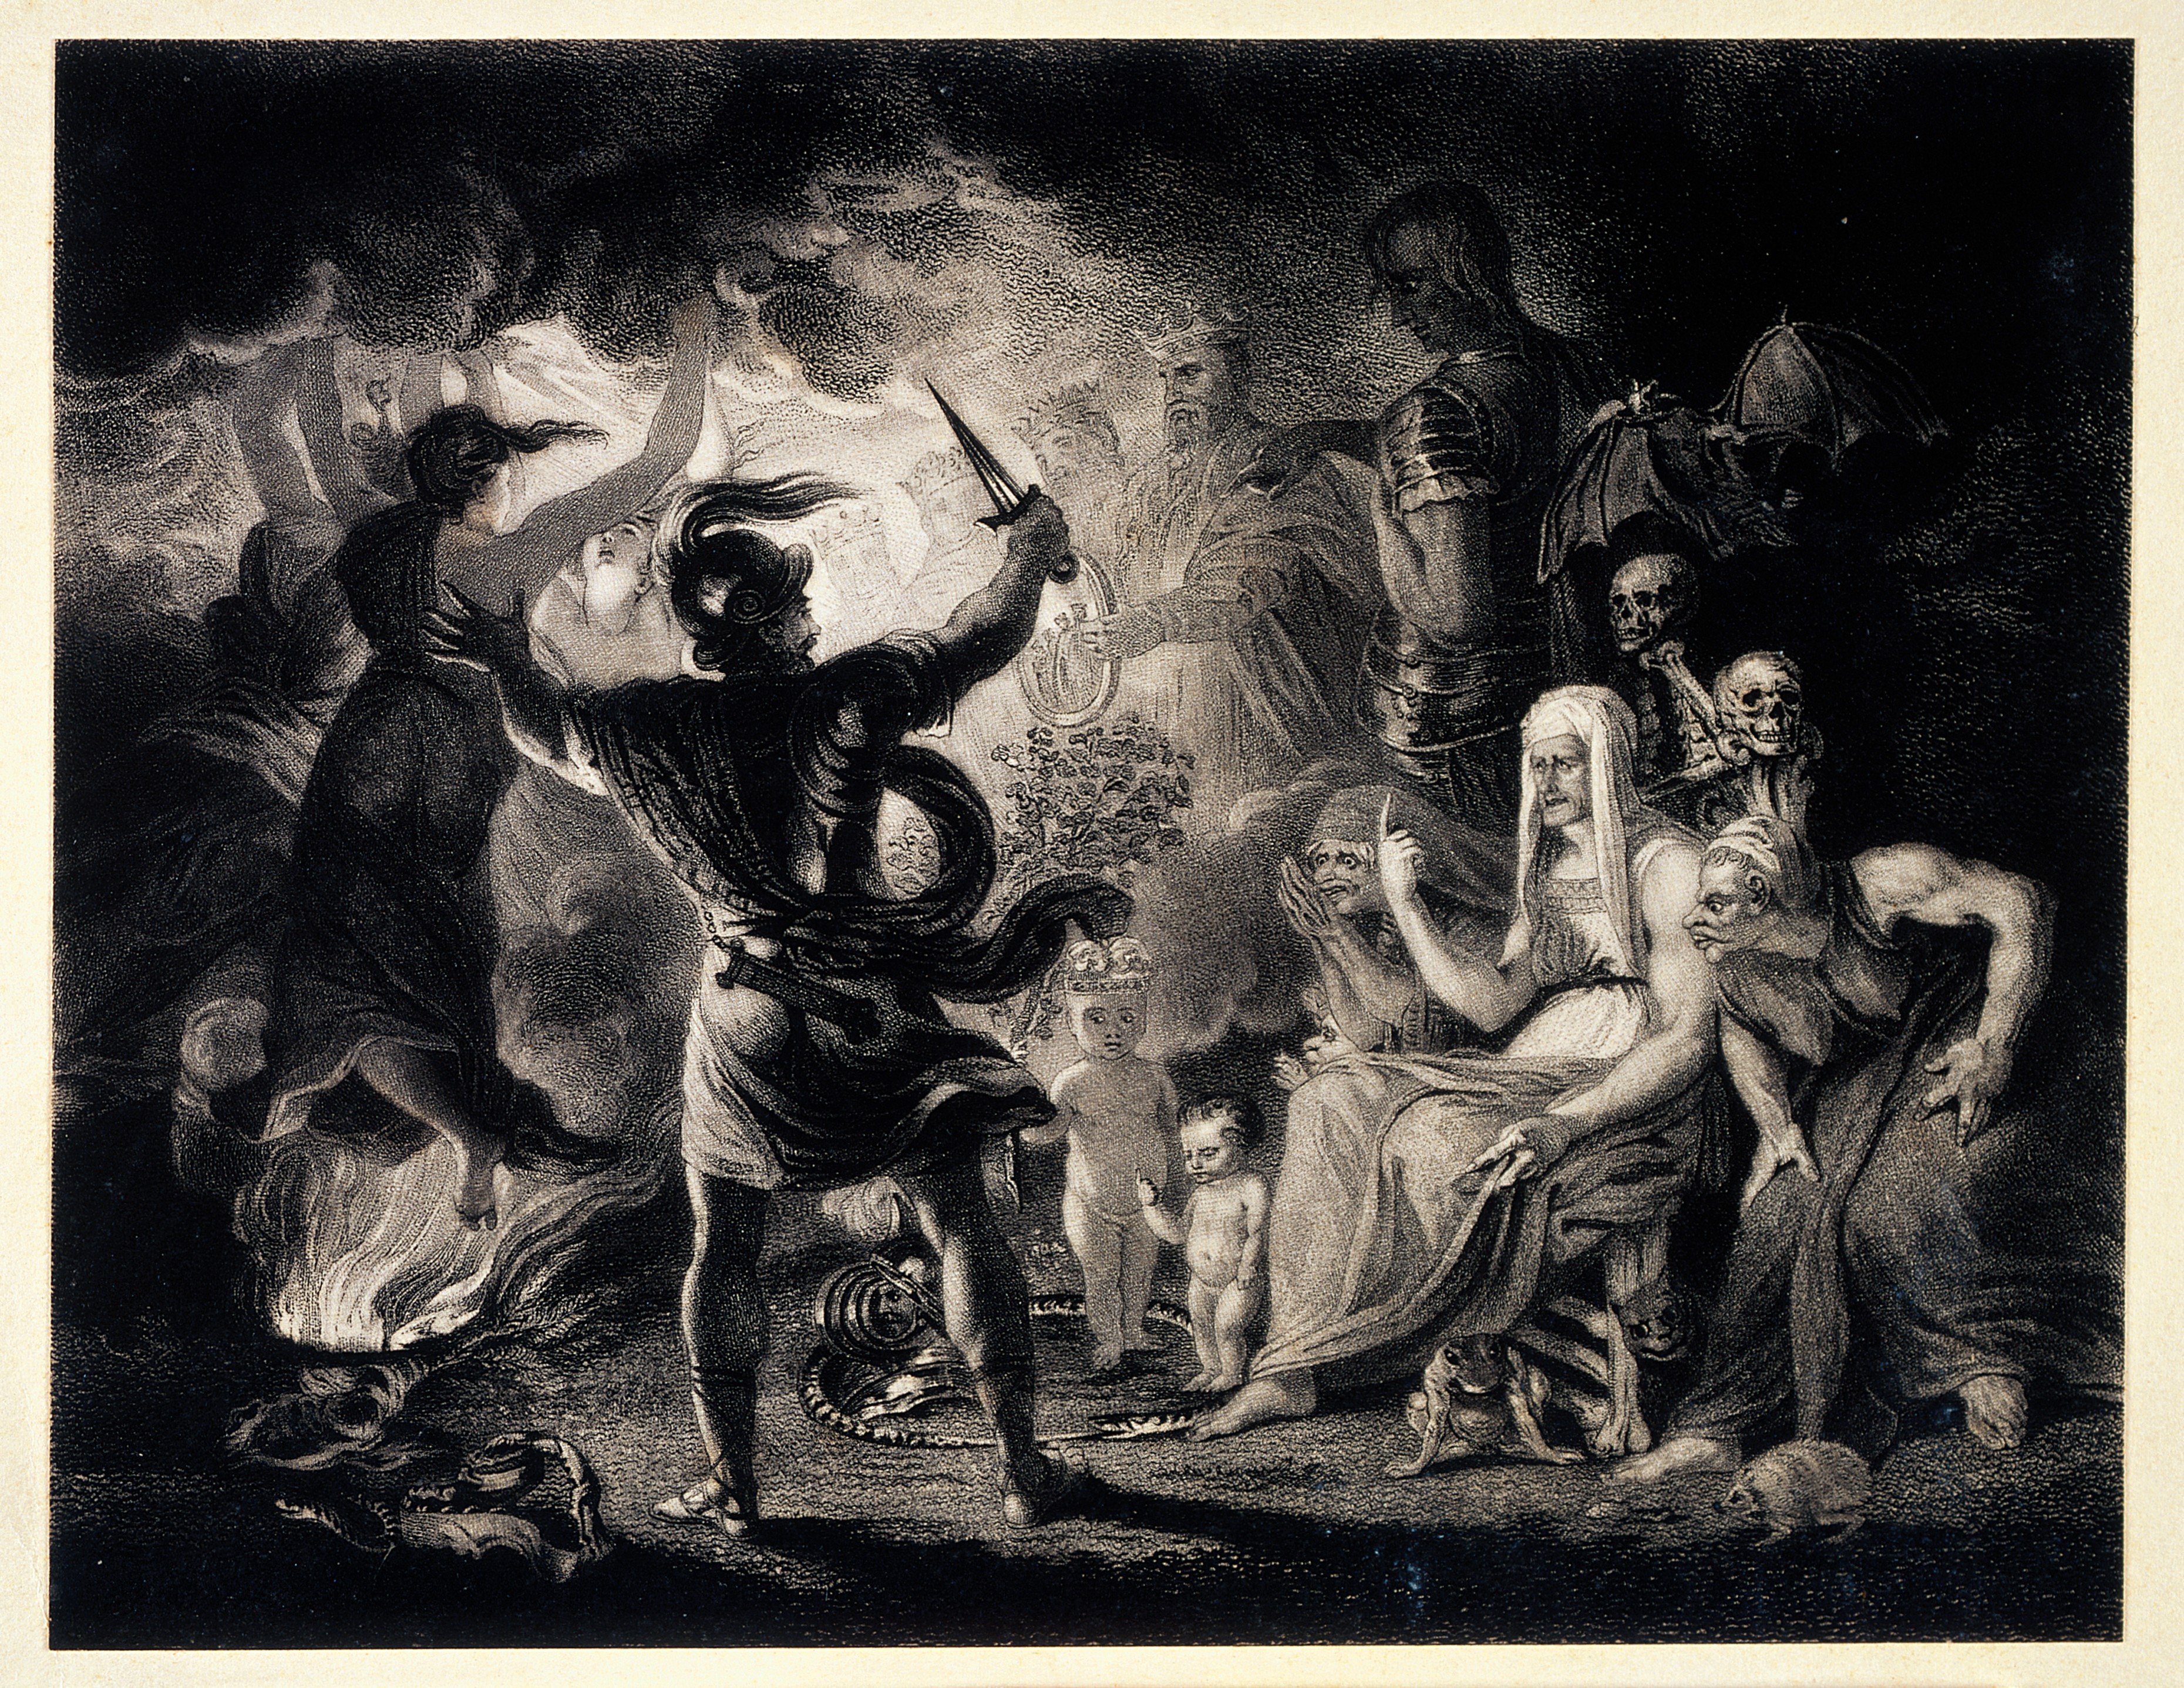 An image of Macbeth seeing three witches, accompanied by witches' familiars